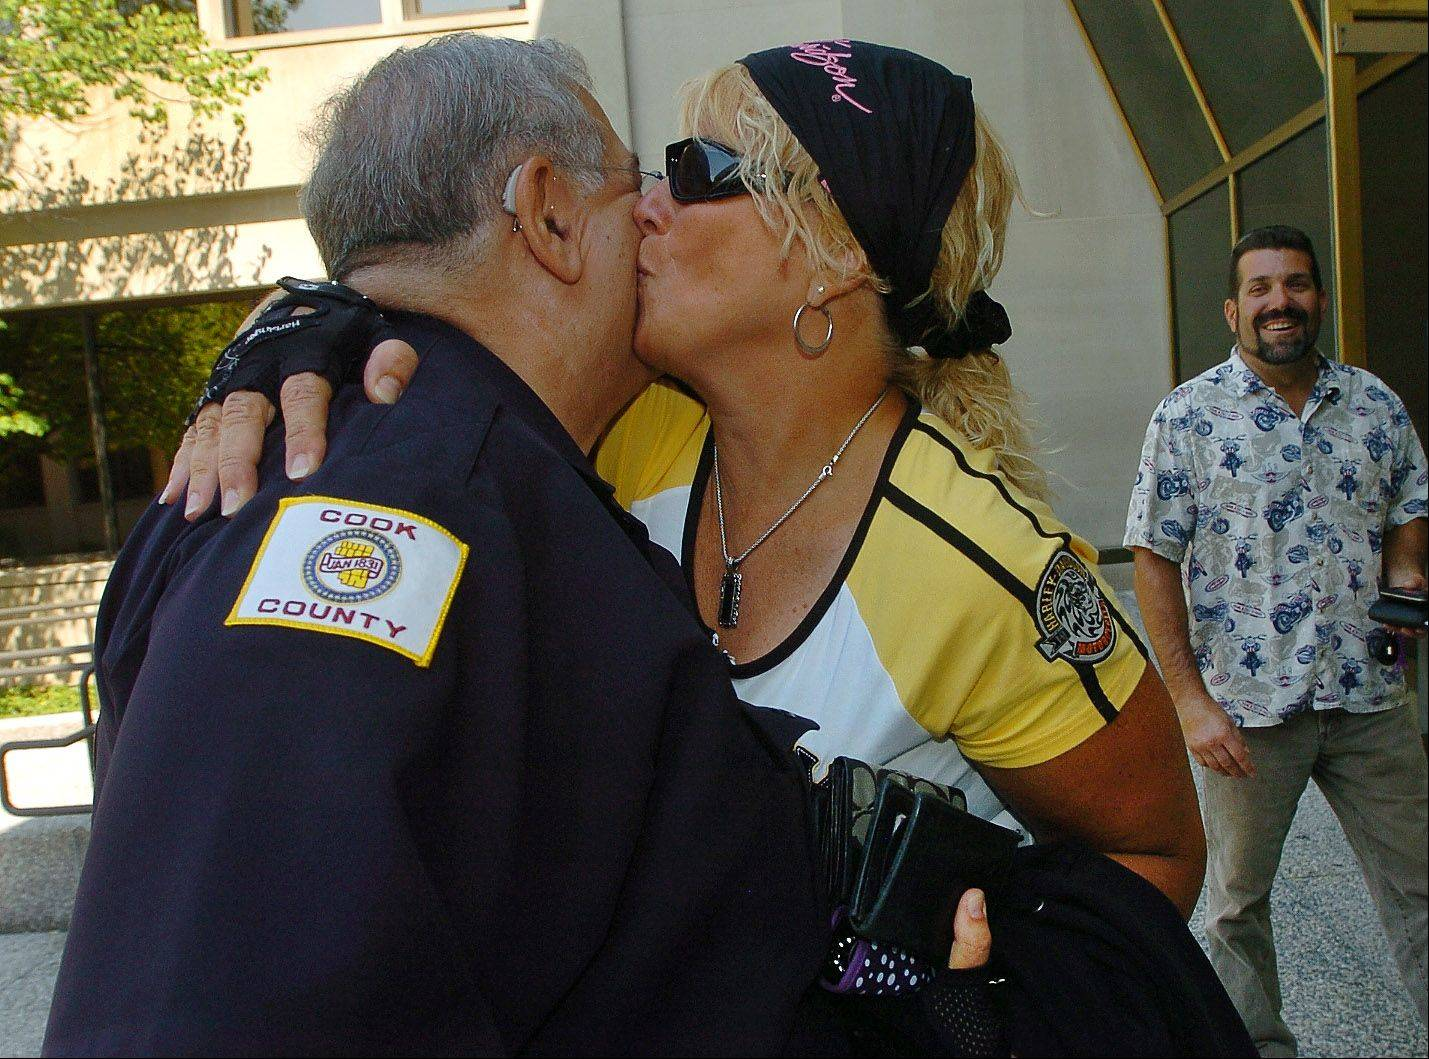 Cook County Sheriff's Deputy Stan Schultz, who's retiring after 46 years in law enforcement, gets a kiss from Probation Officer Kay Smith.